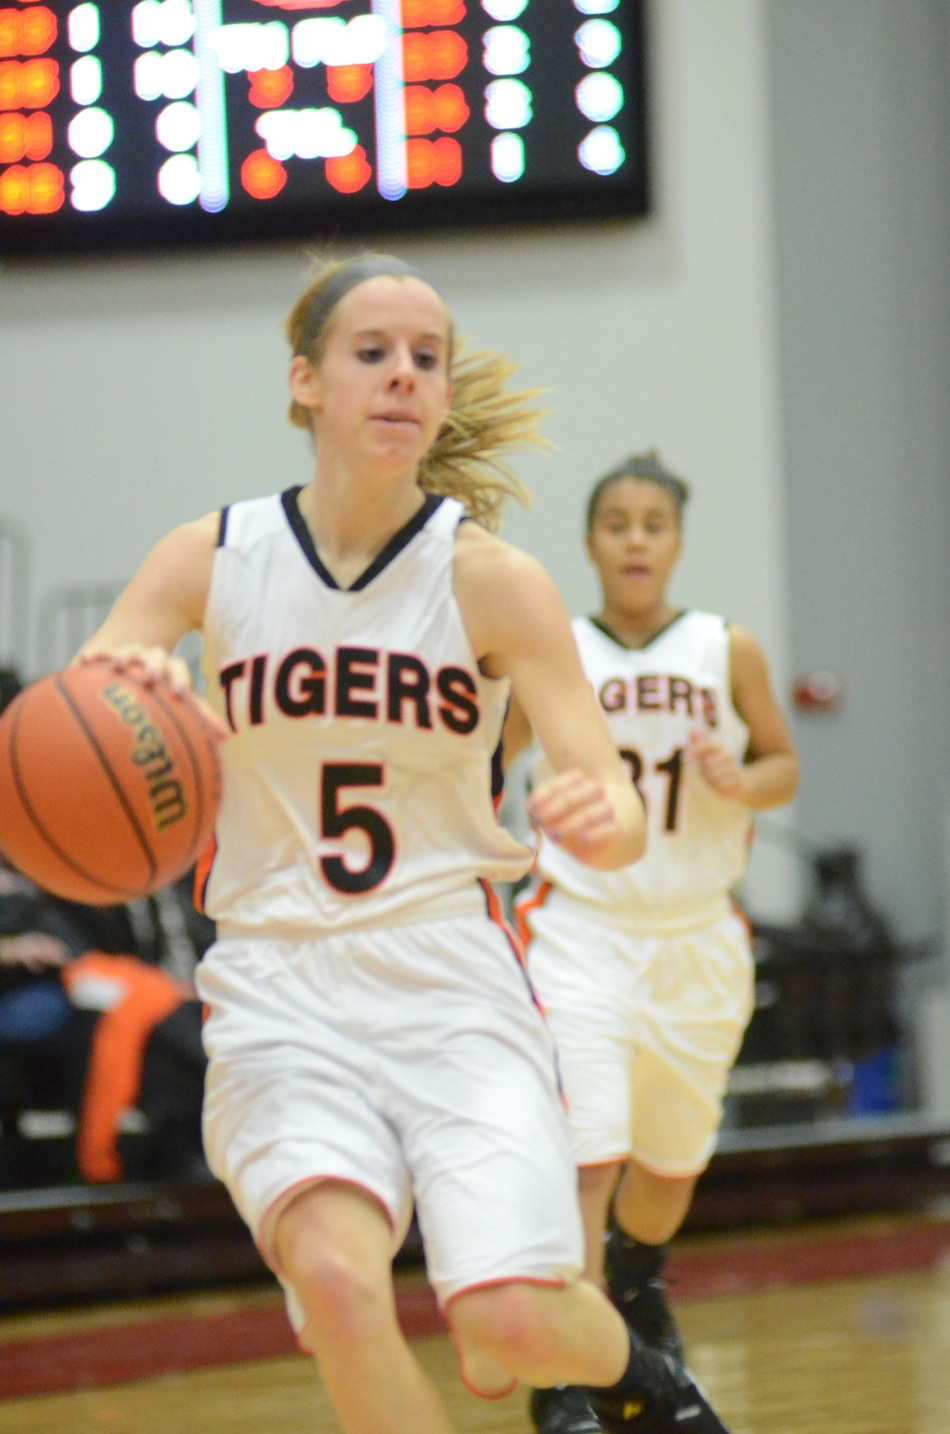 Senior guard Sarah Ray brings the ball up court Thursday night at Grace College. Ray helped the No. 10 Tigers remain undefeated with a 76-49 rout of Marion.